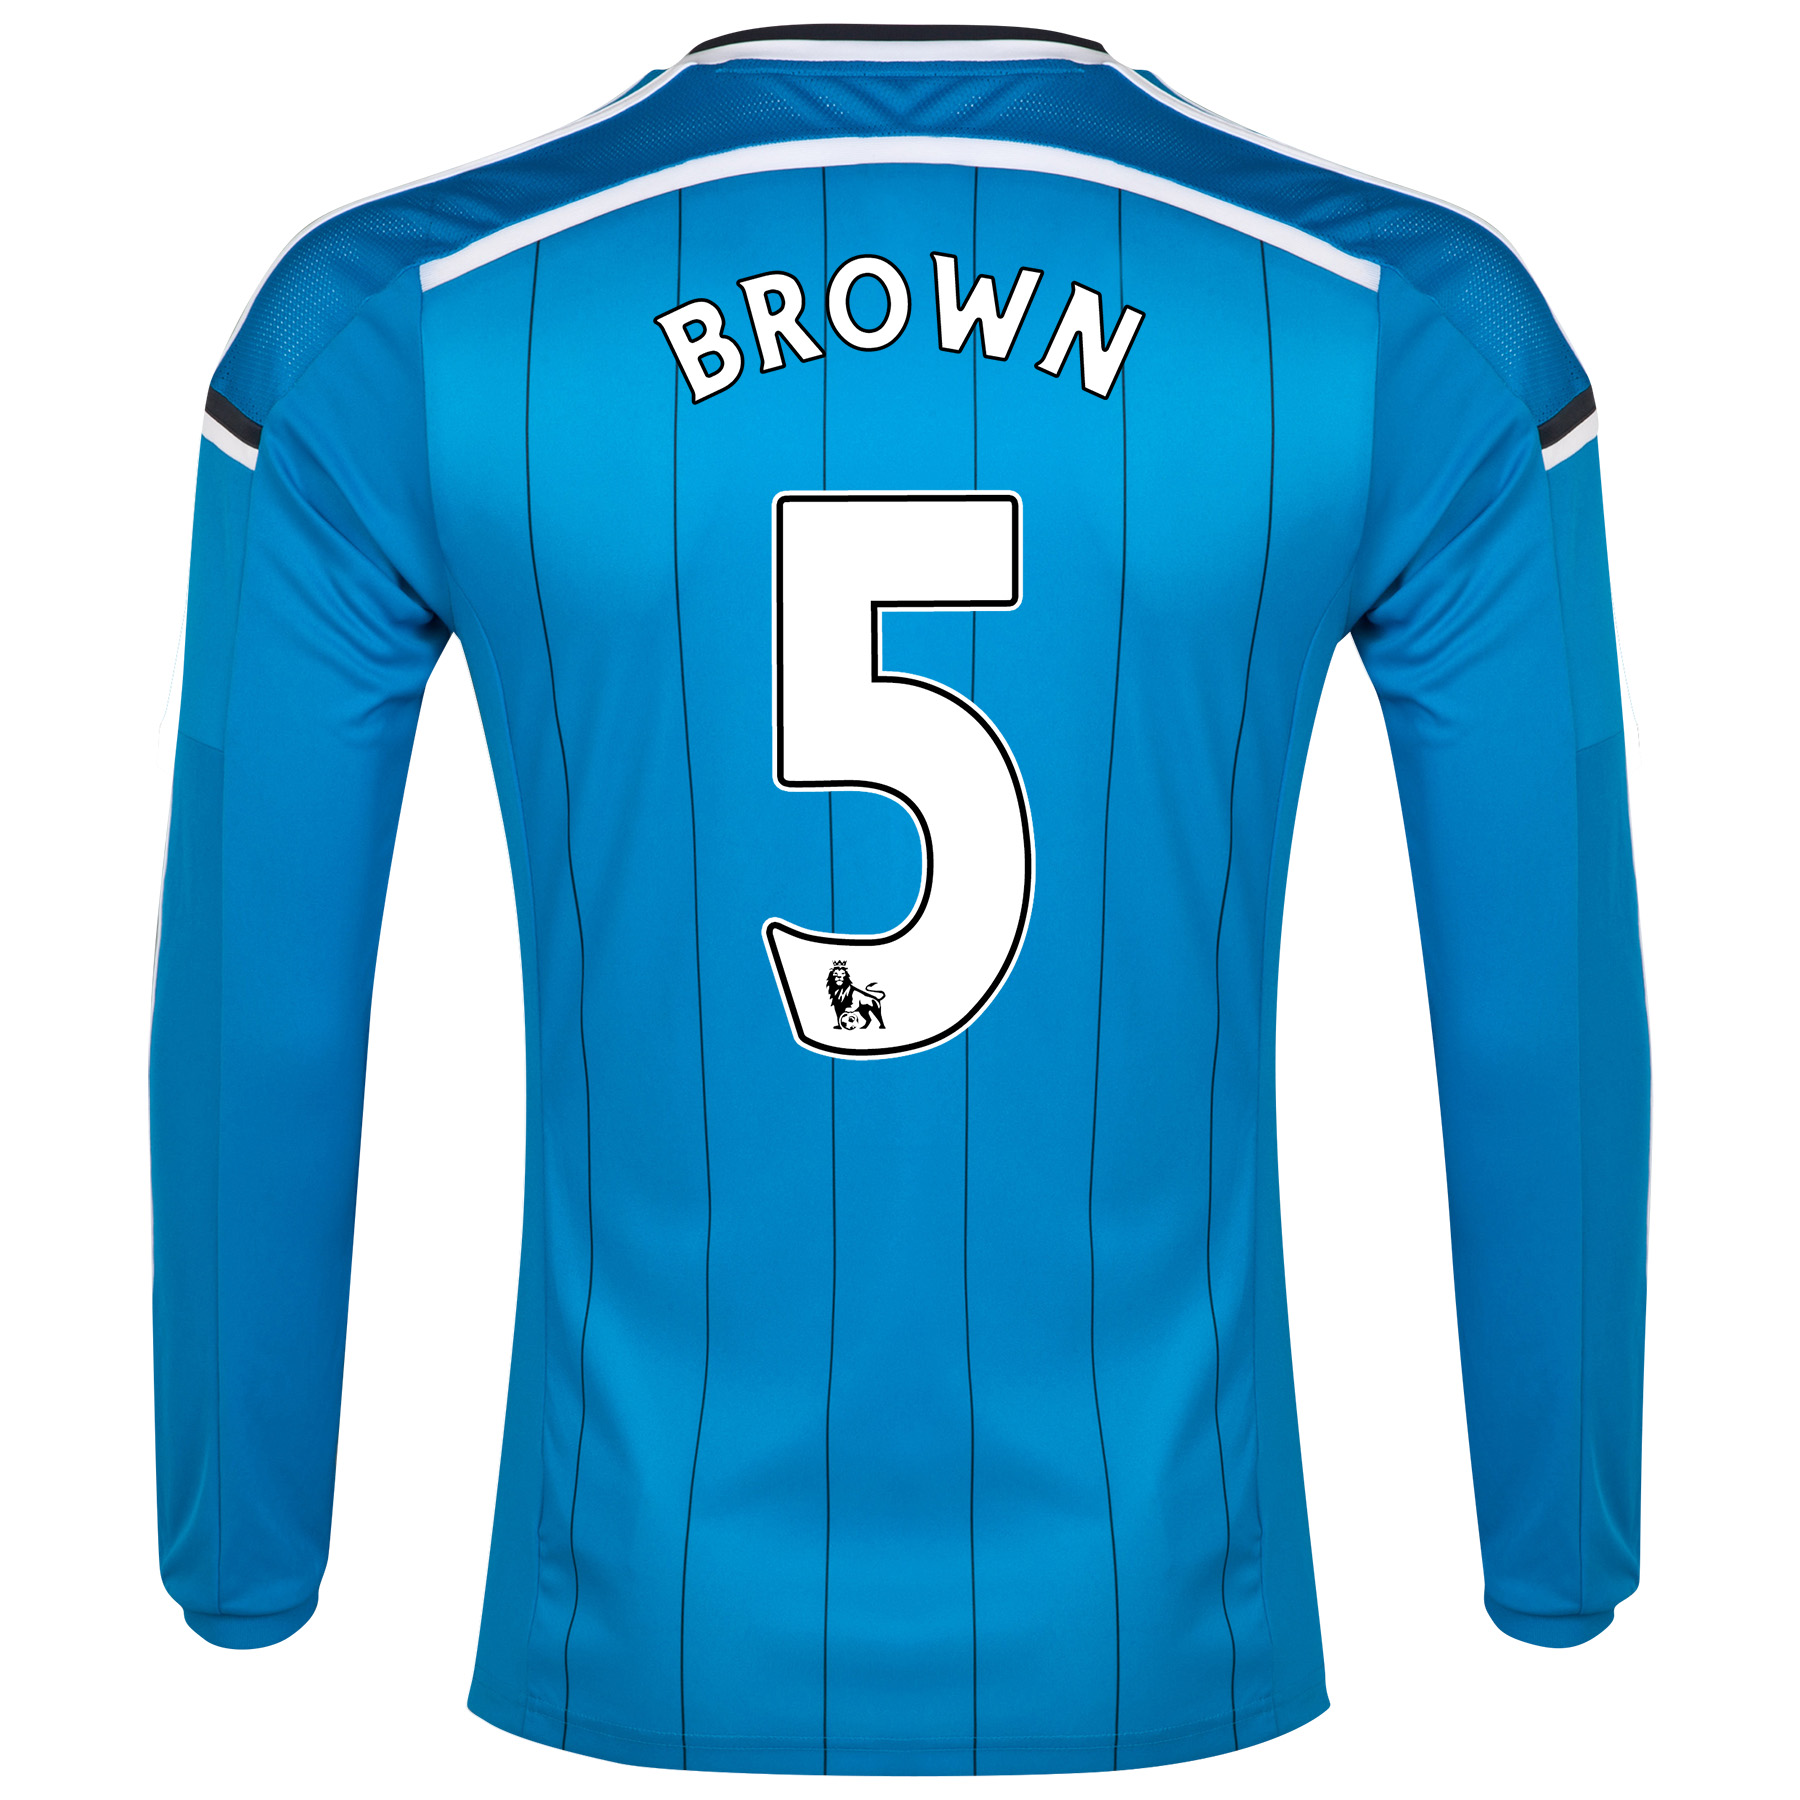 Sunderland Away Shirt 2014/15 - Long Sleeved Lt Blue with Brown 5 printing